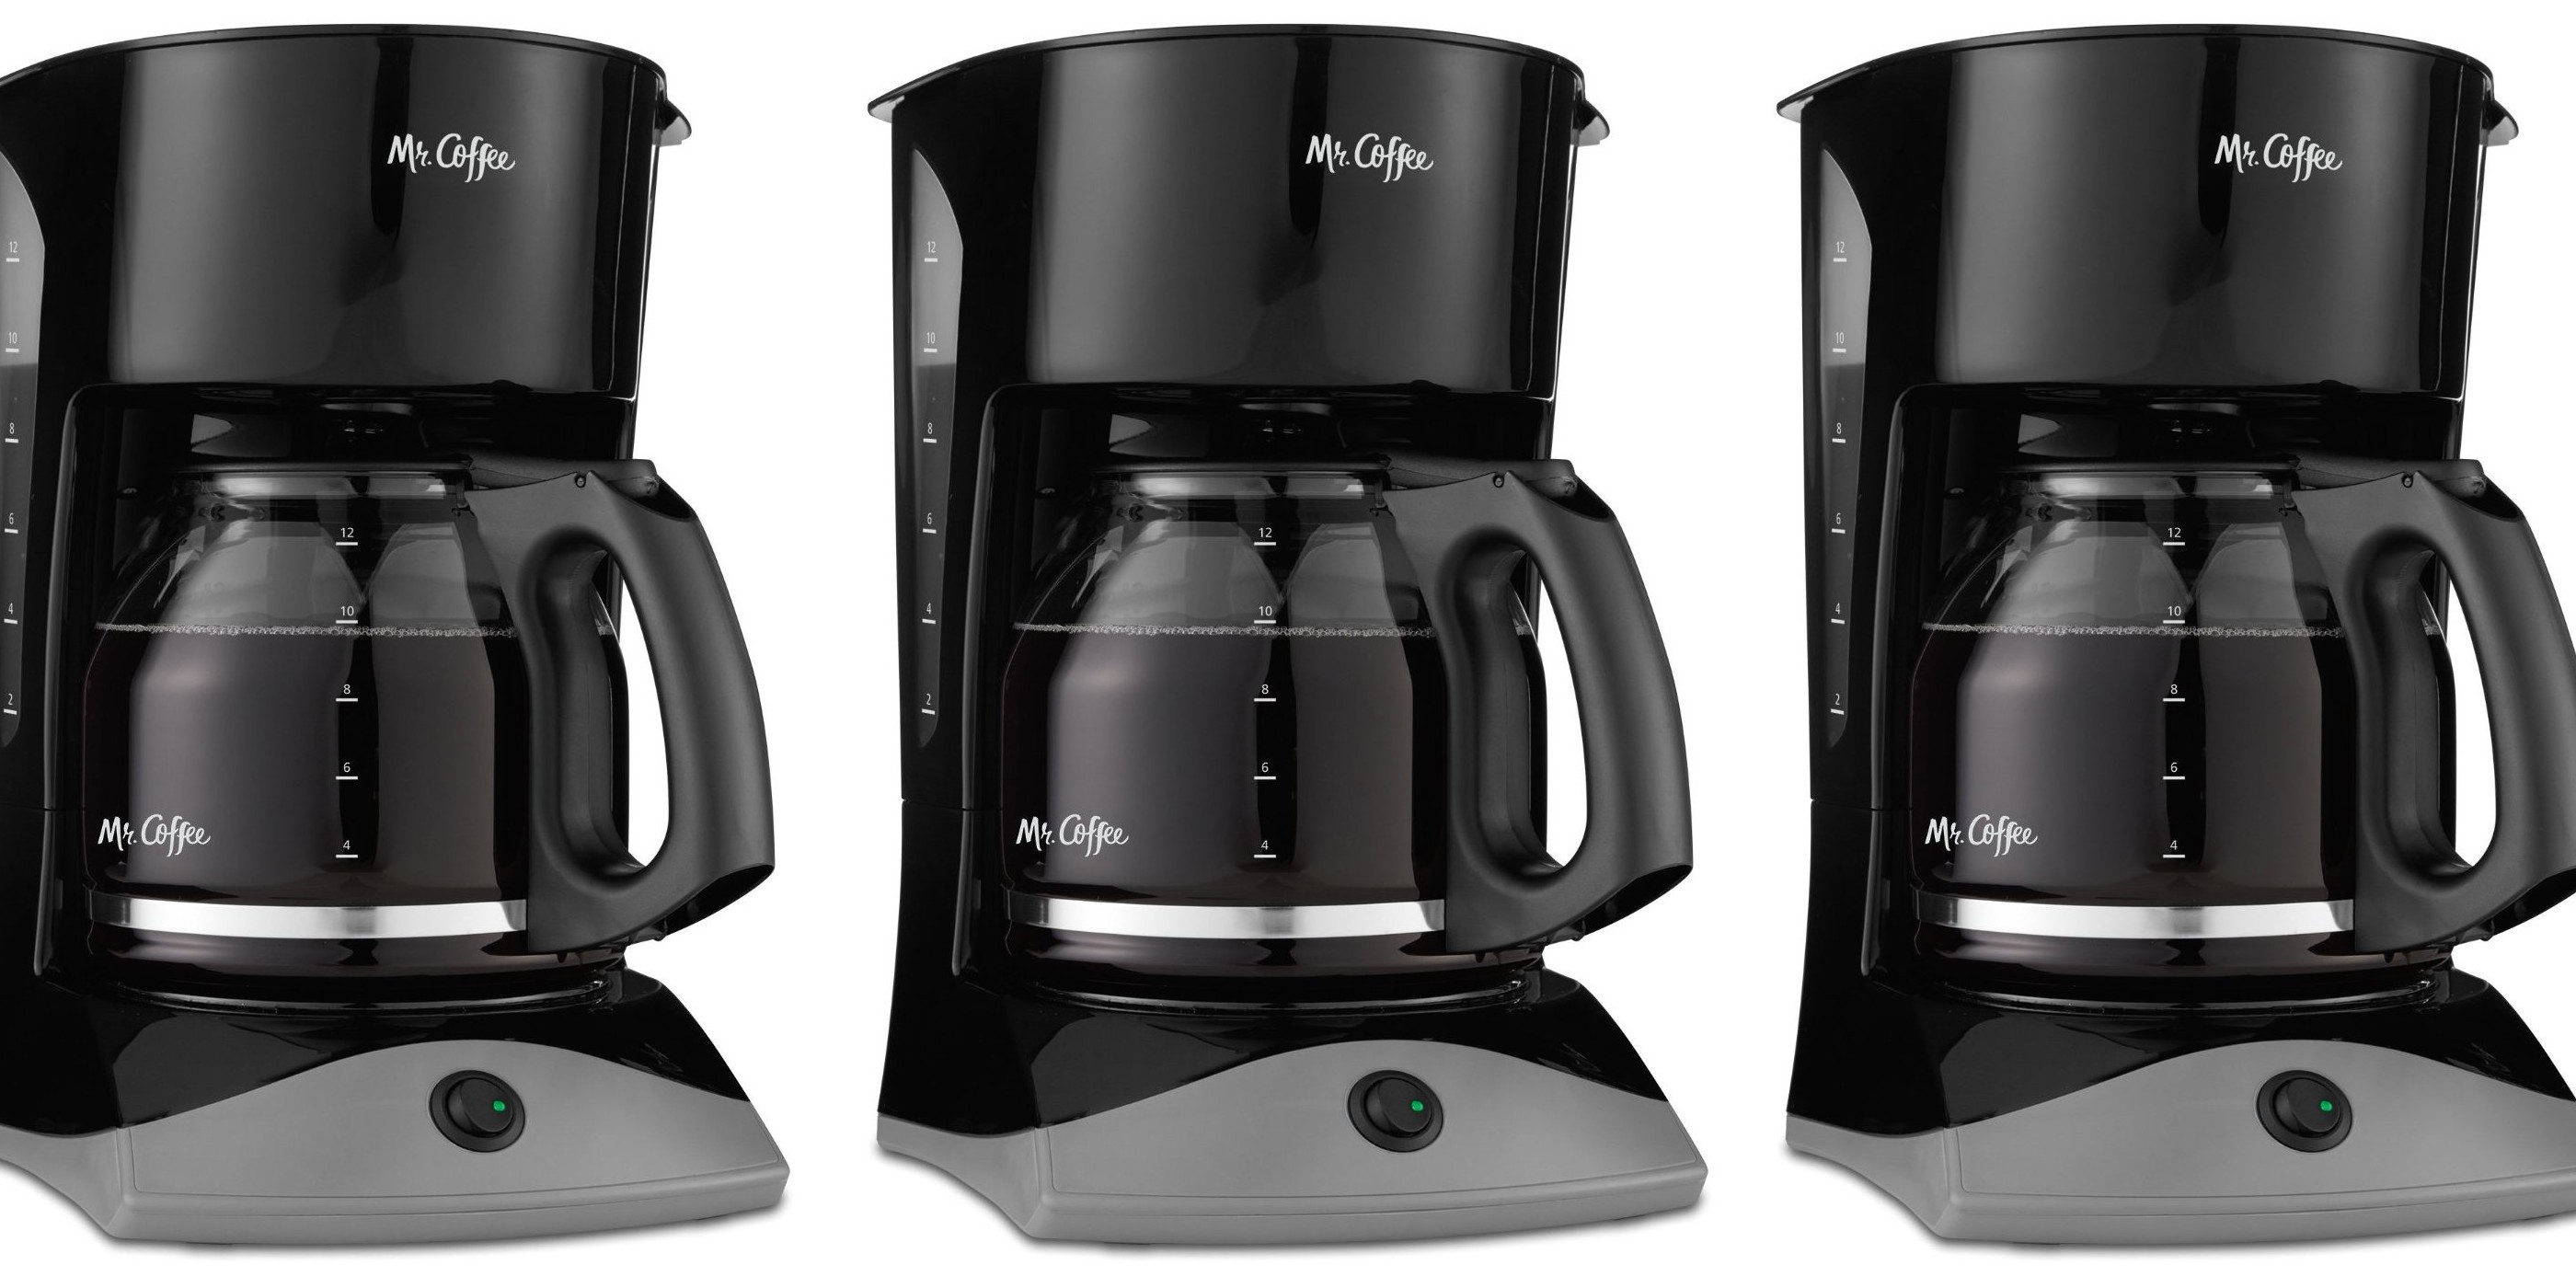 mr-coffee-12-cup-coffeemaker-in-black-sk13